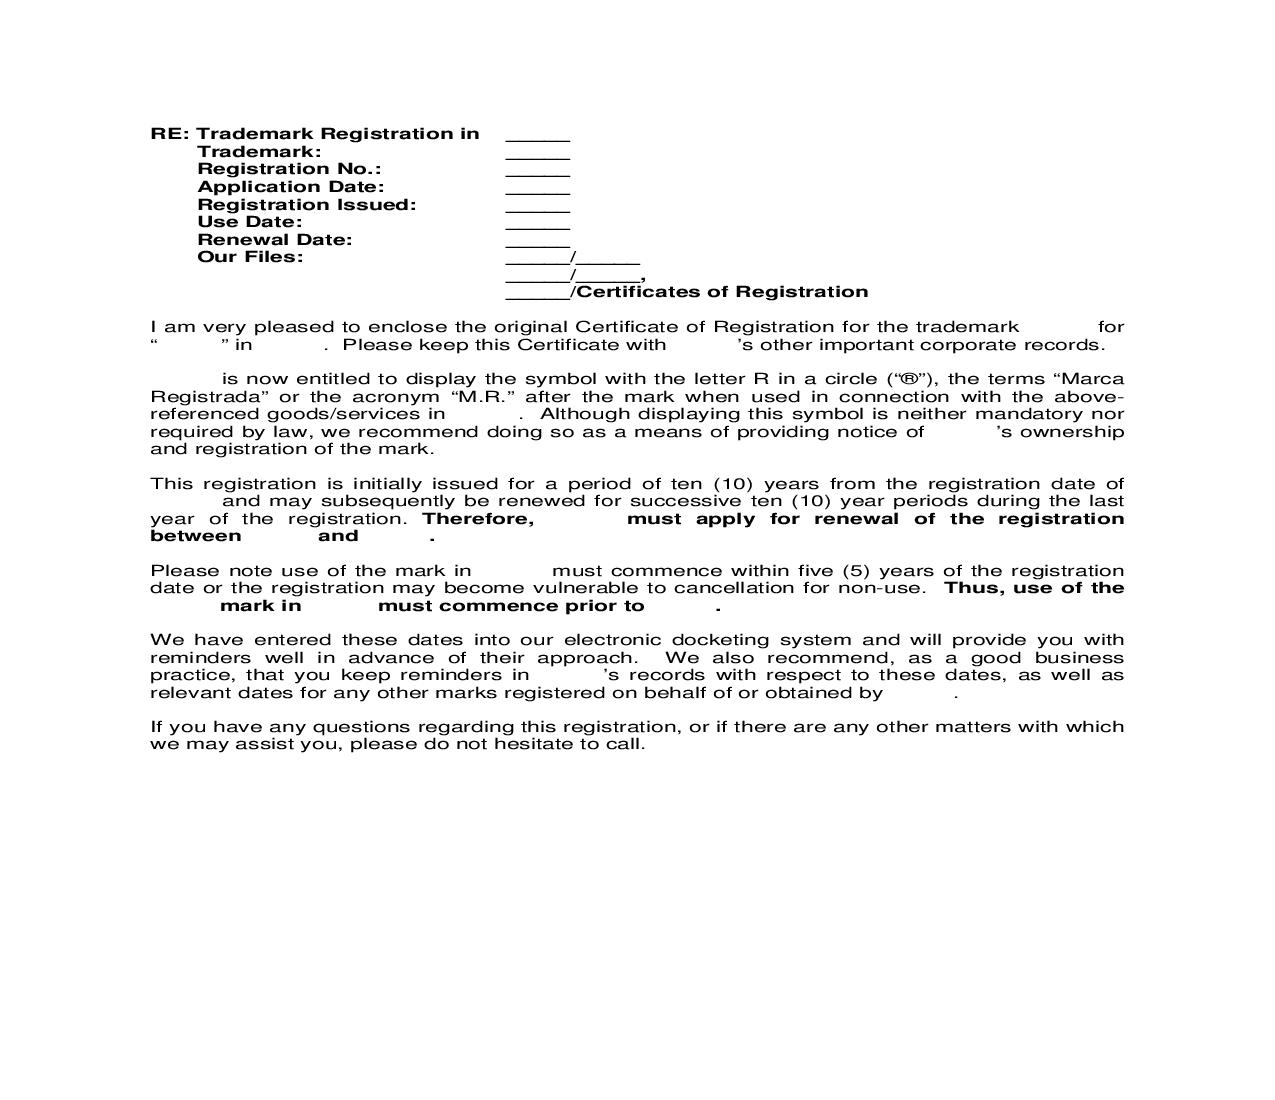 Foreign Registration Brazil Letter to Client enclosing Trademark Registration | Pdf Doc Docx | Cooley IP Forms